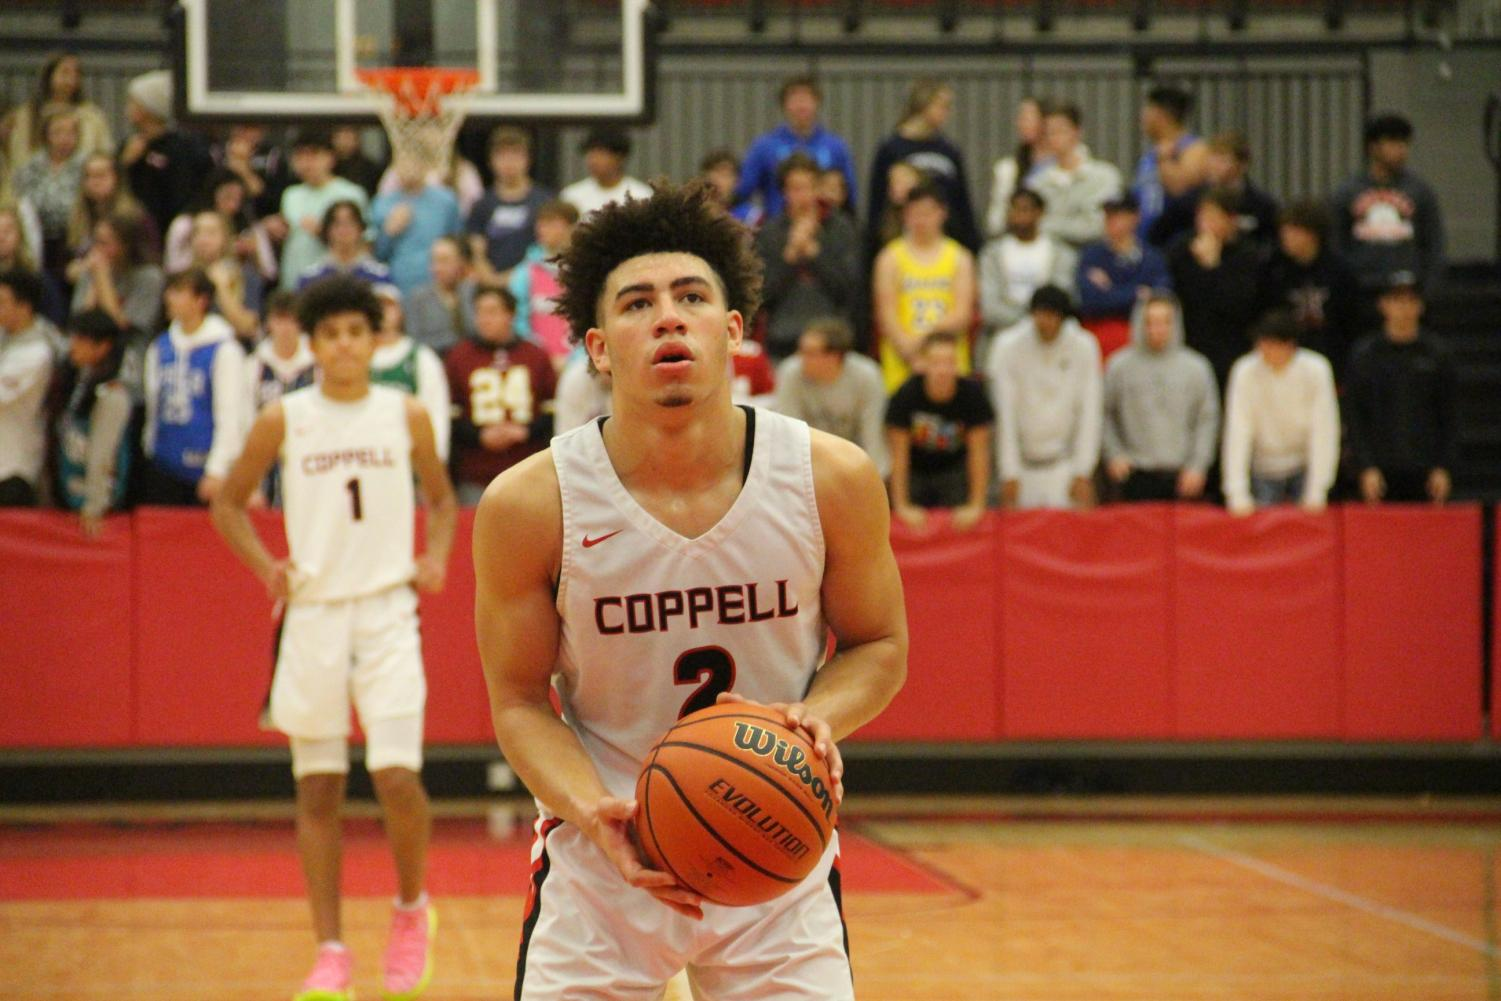 Coppell senior guard Brandon Taylor attempts a free throw in the CHS Arena on Tuesday against Timber Creek.